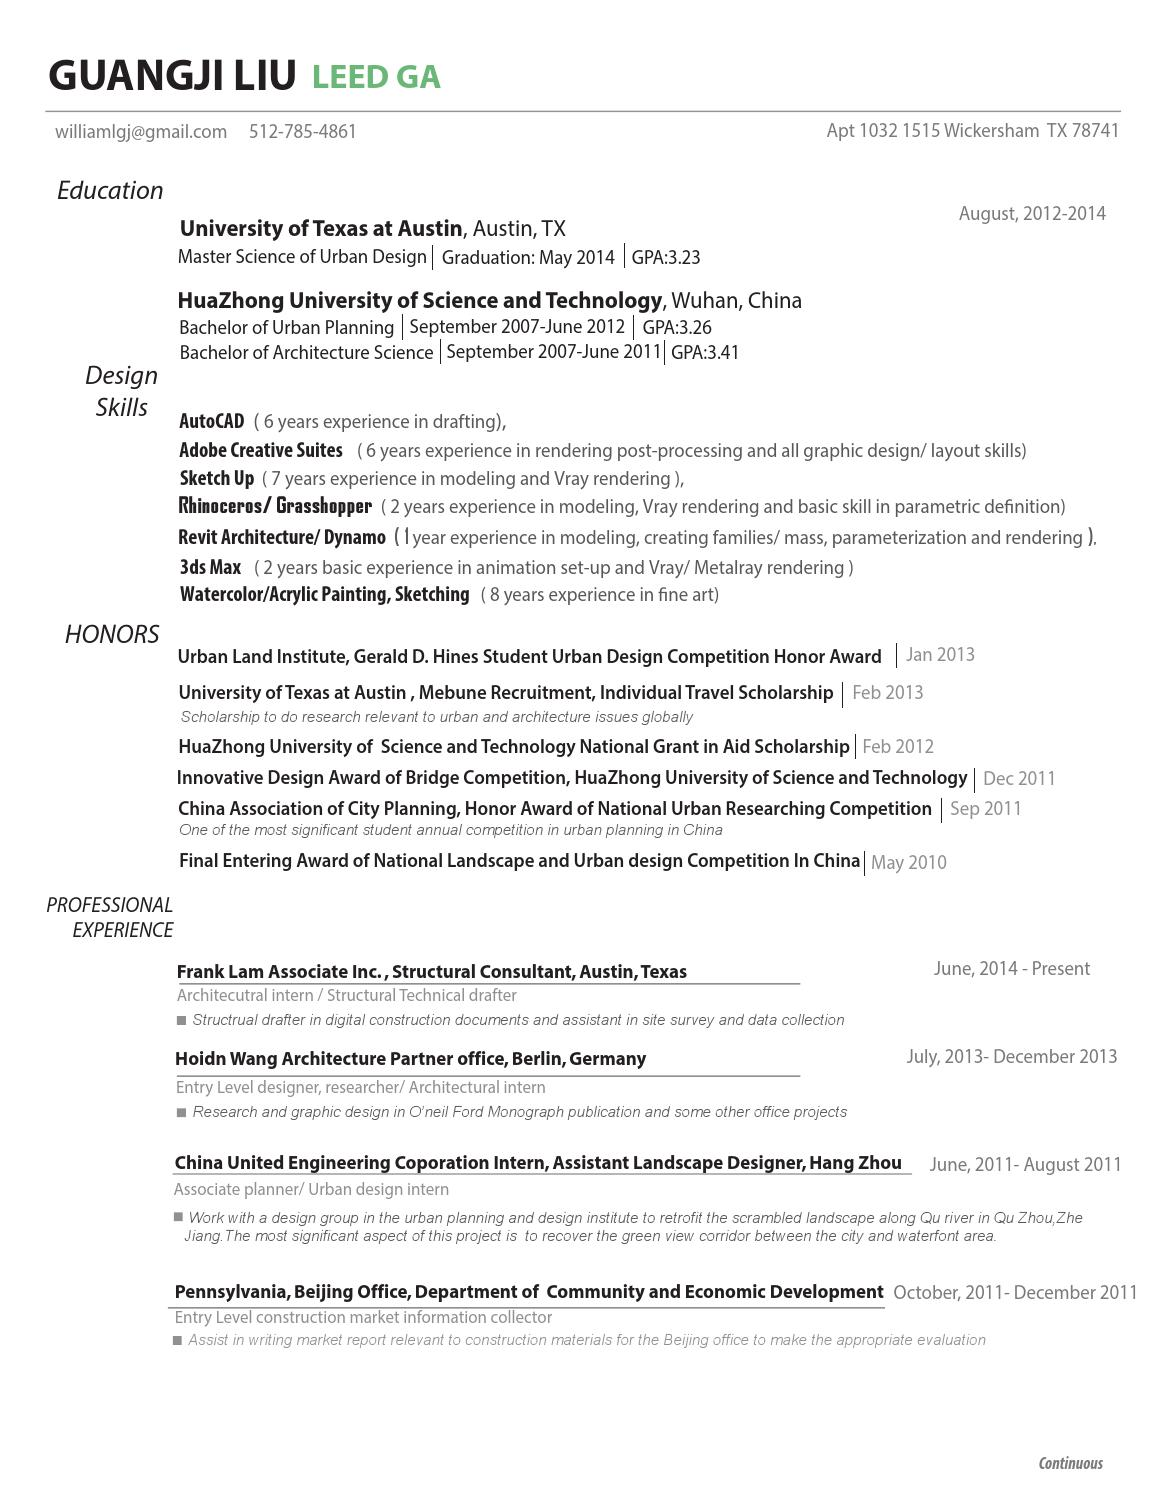 Resume cover letter by guangji liu - issuu